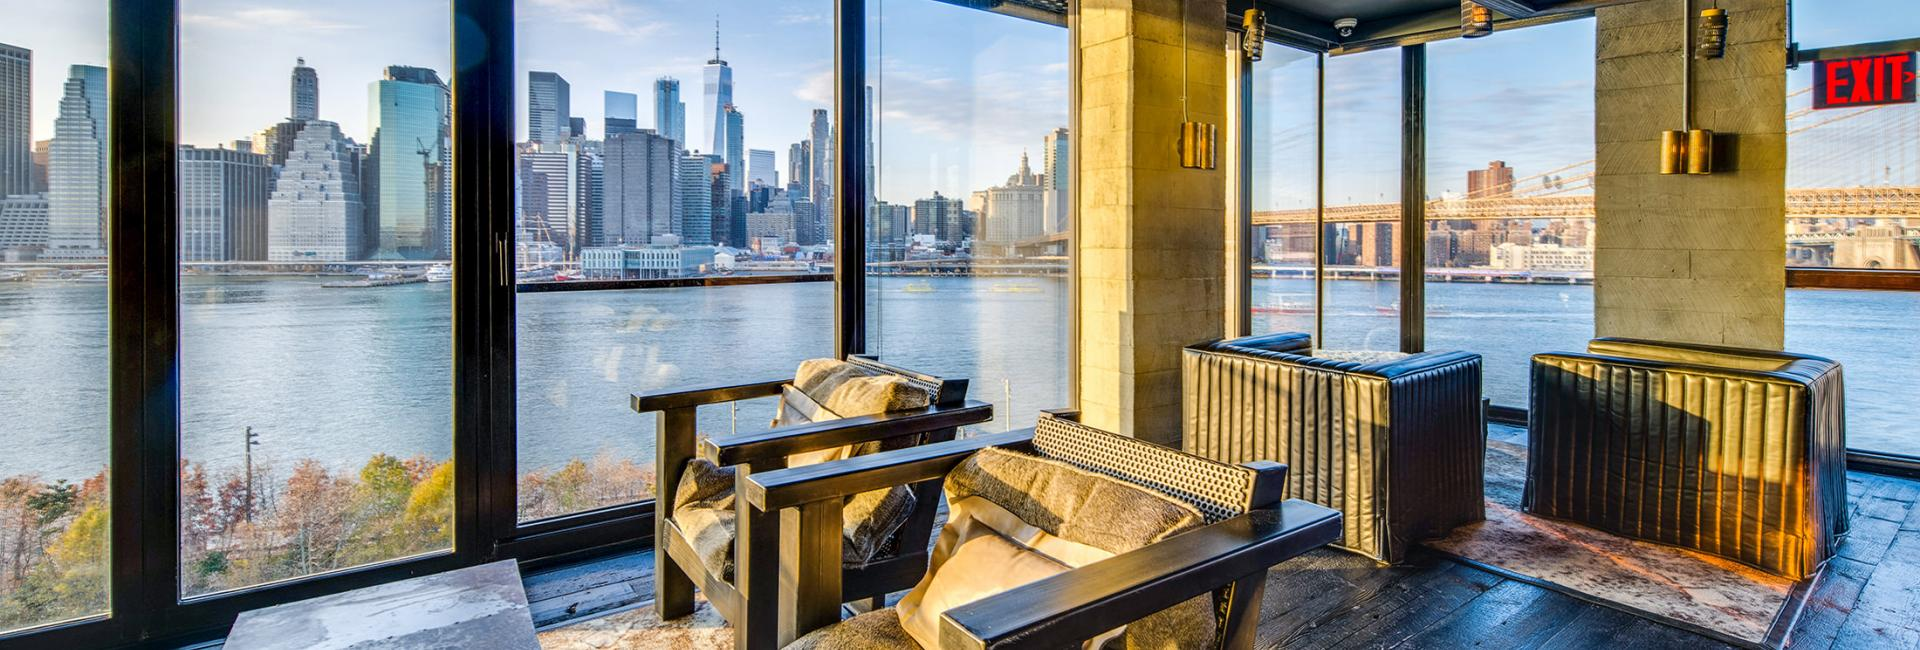 A view of the Manhattan skyline from the Brooklyn Heights Social Club